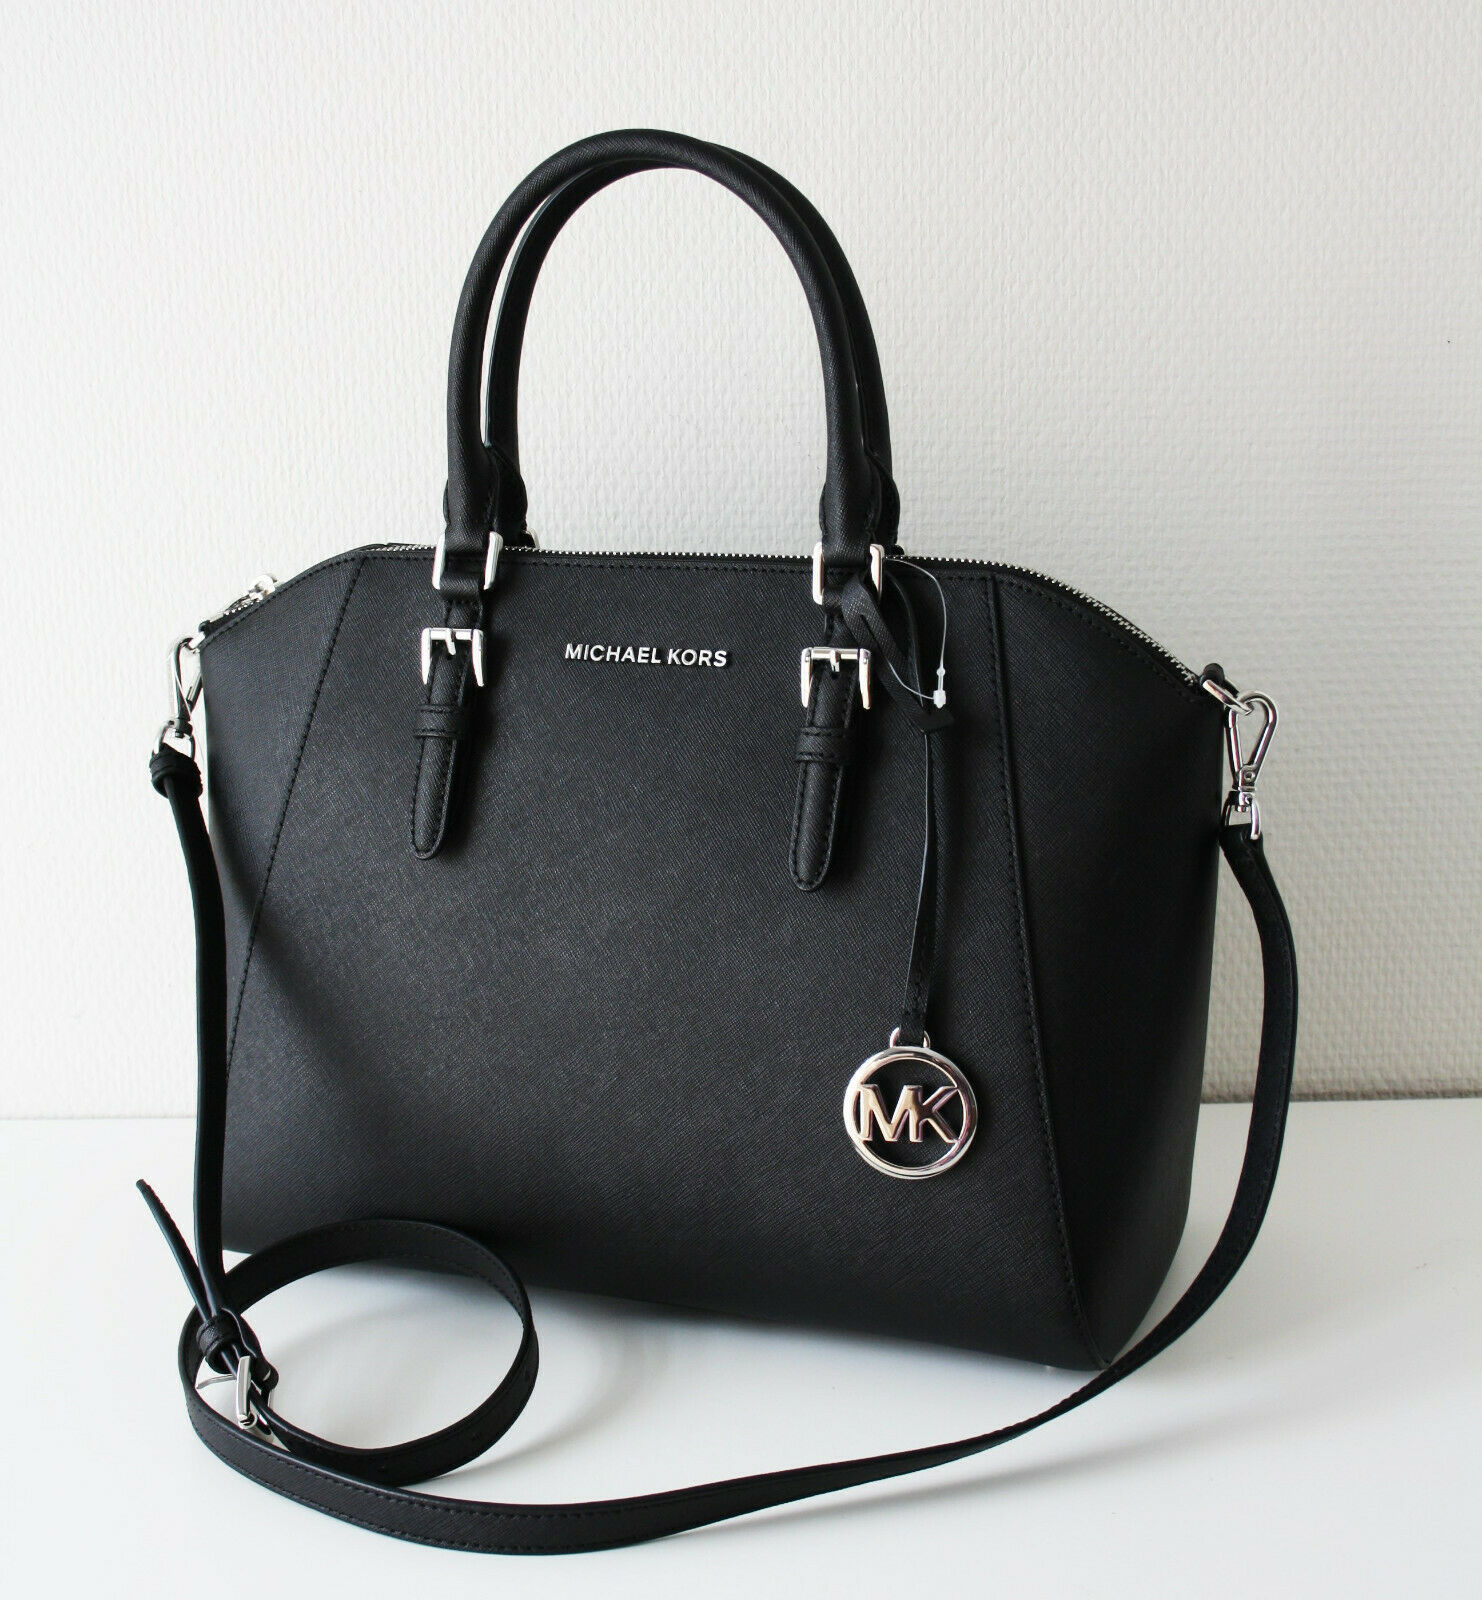 Michael Kors Bag Handbag Ciara LG Satchel Black 35H5SC6S3L